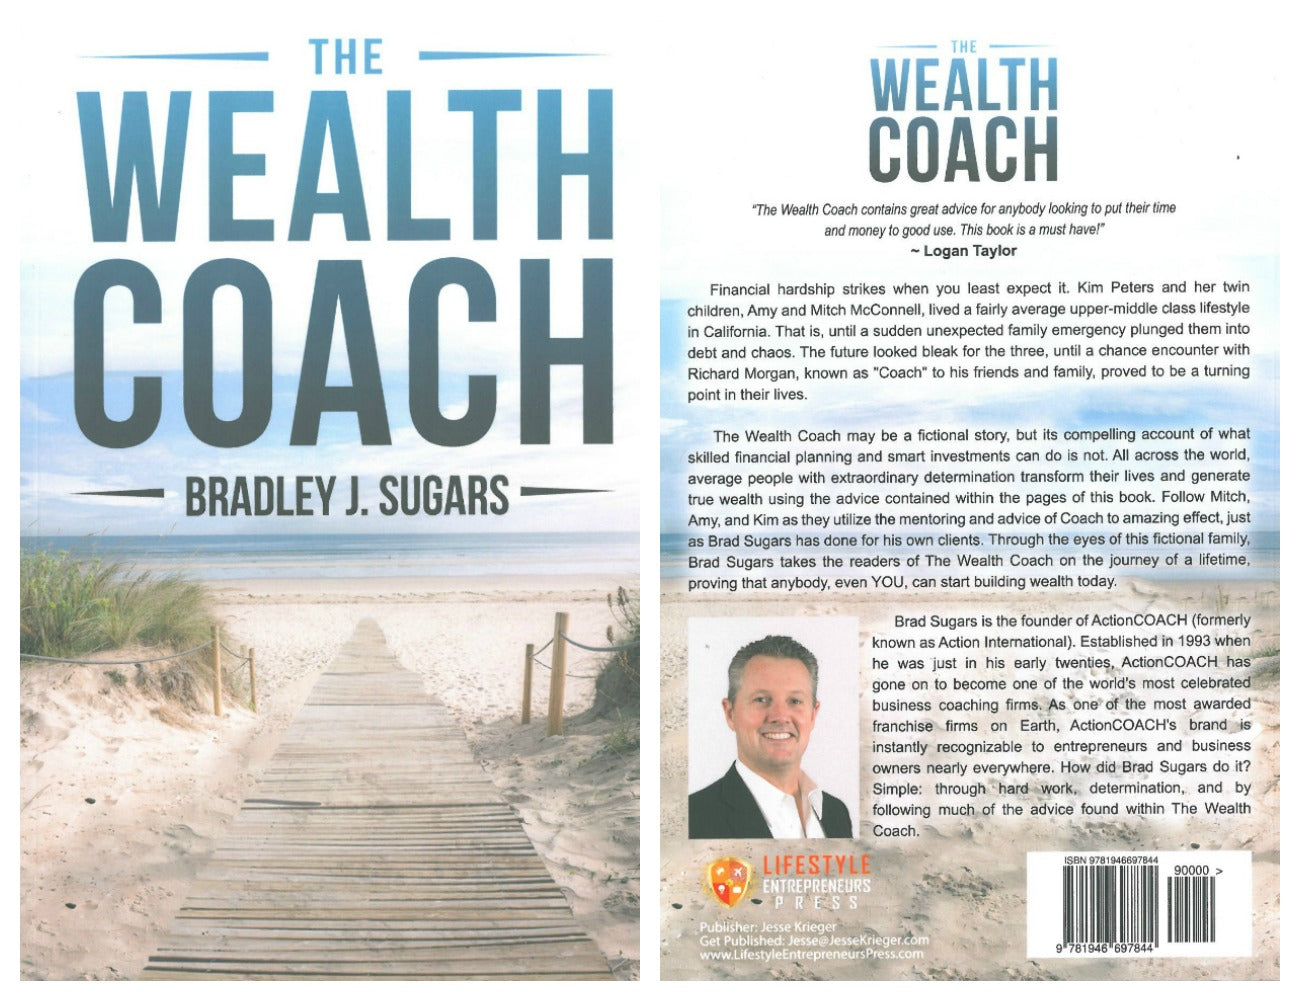 The Wealth Coach by Bradley J. Sugars